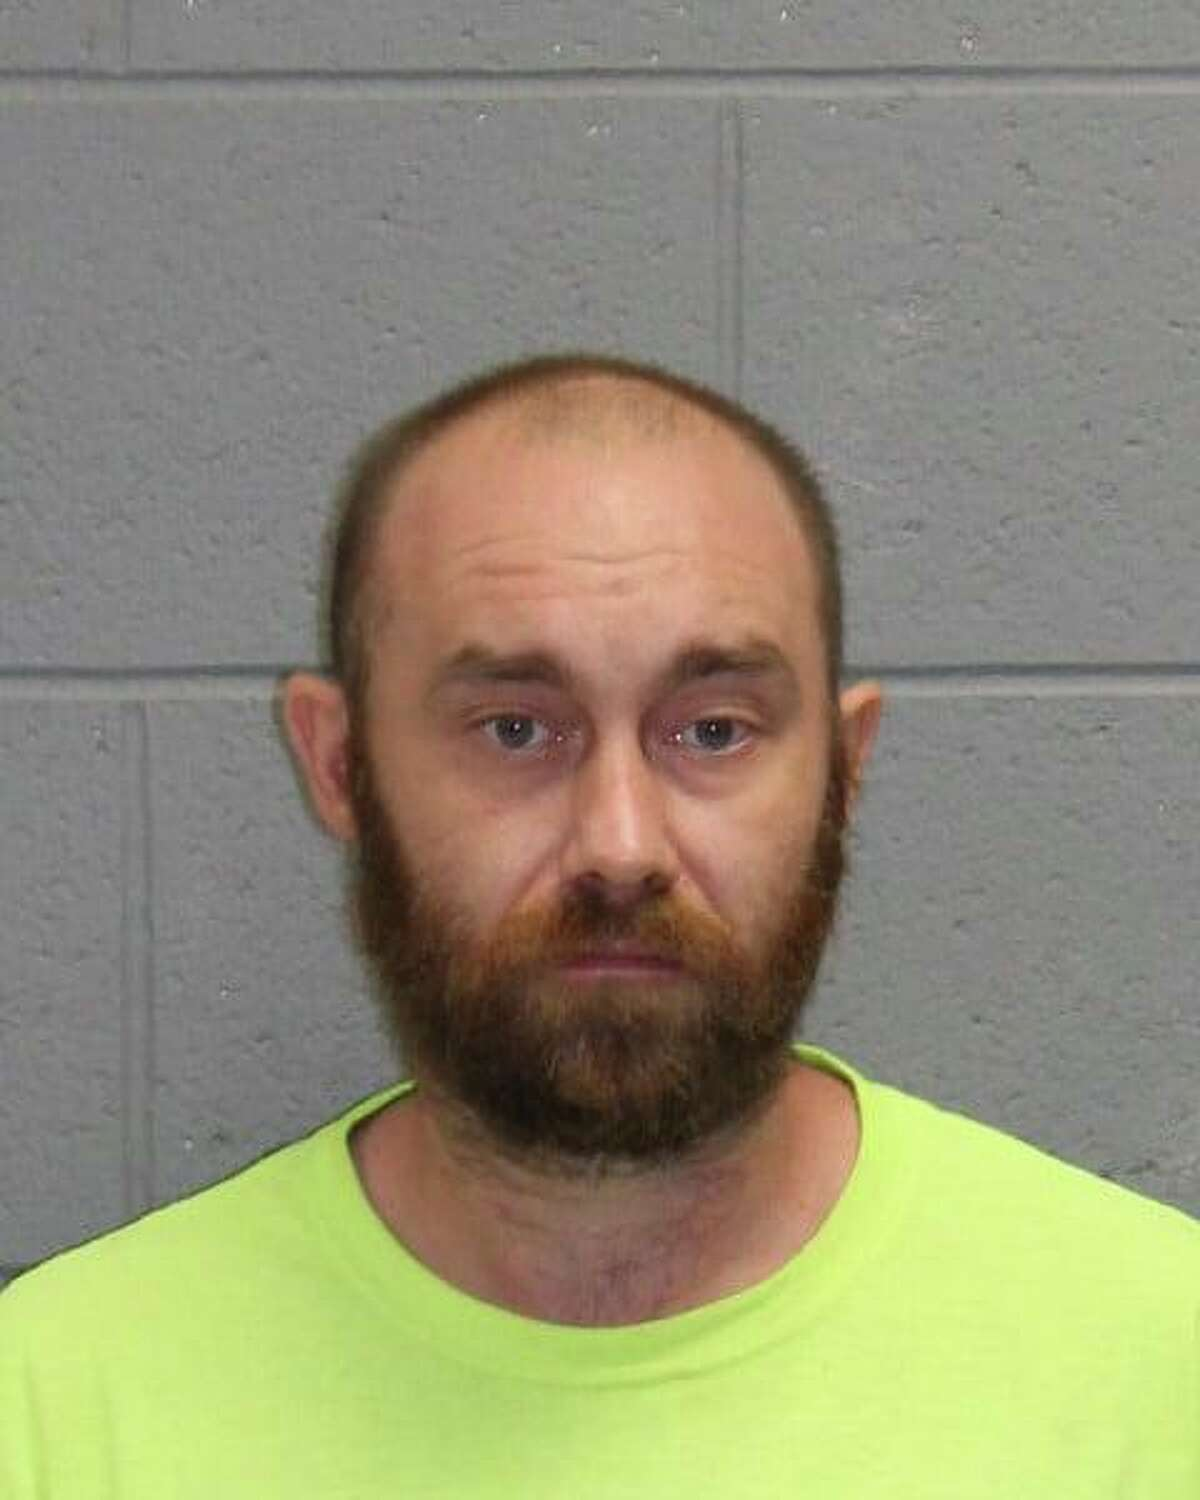 Scott Childs, 31, was arrested Wednesday after a dog he allegedly kicked had to be euthanized.